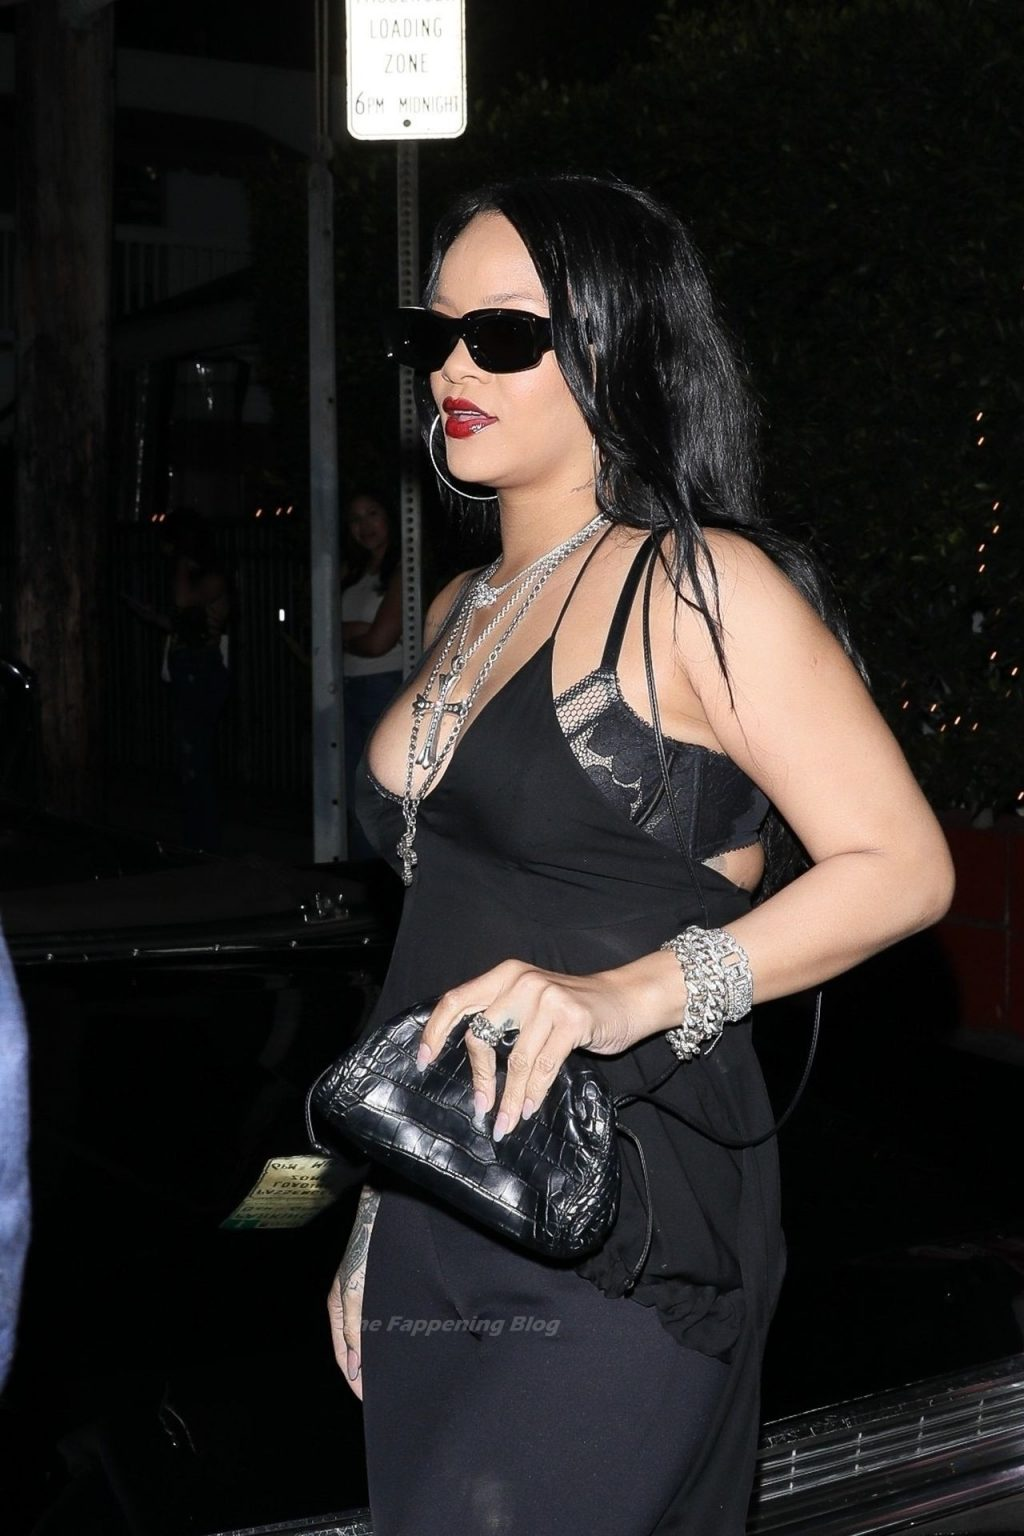 Rihanna Stuns in All Black While Out for Dinner at Giorgio Baldi (62 Photos)